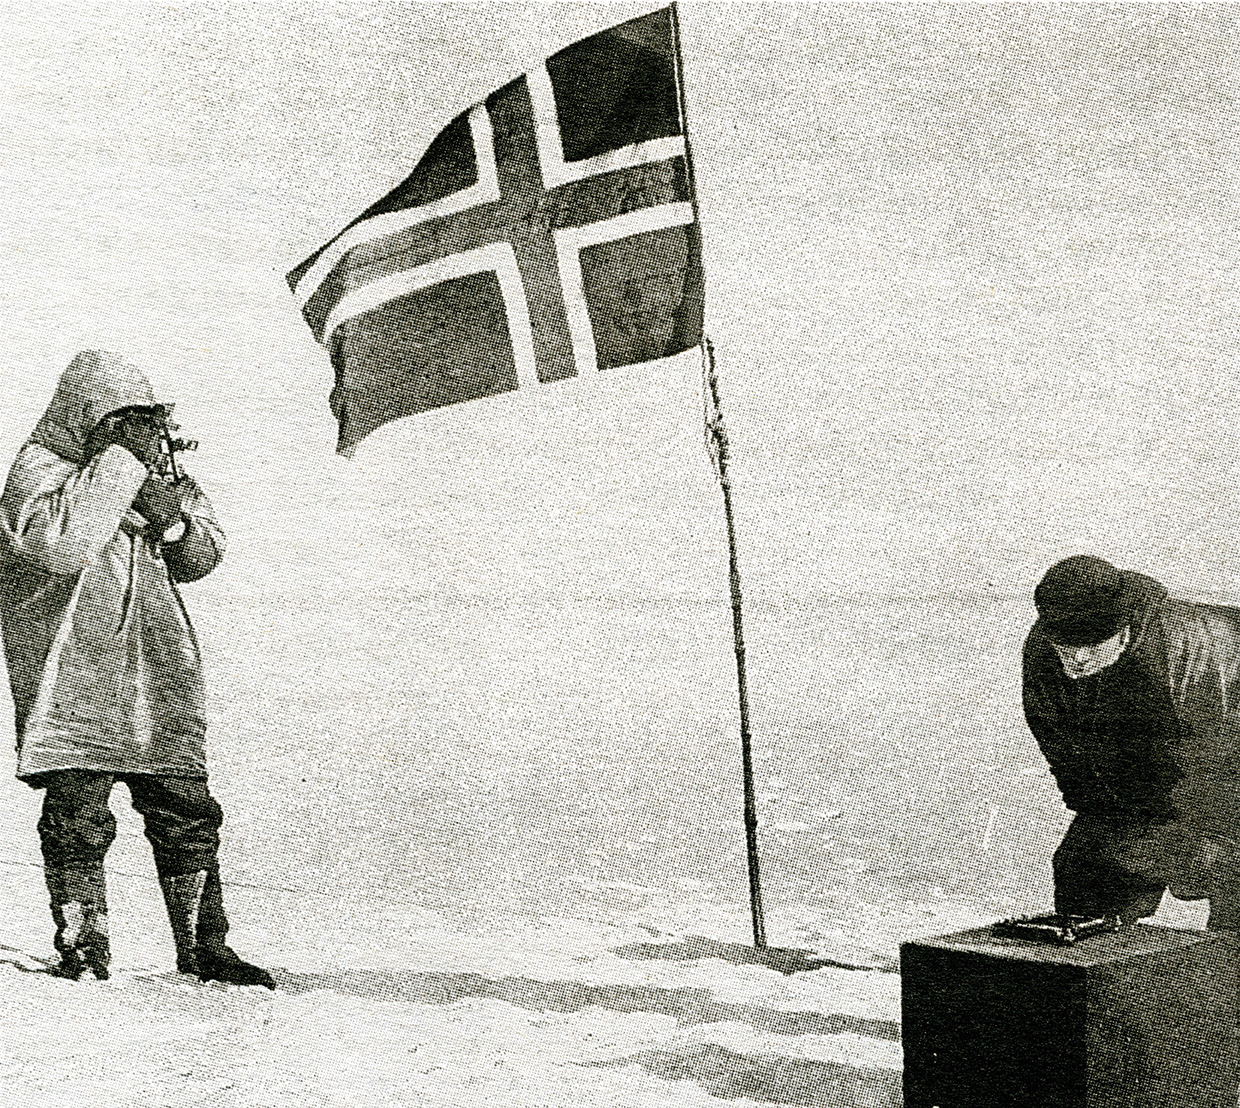 South Pole after fierce competition from Britain's Robert Falcon Scott, who arrived 35 days after Amundsen